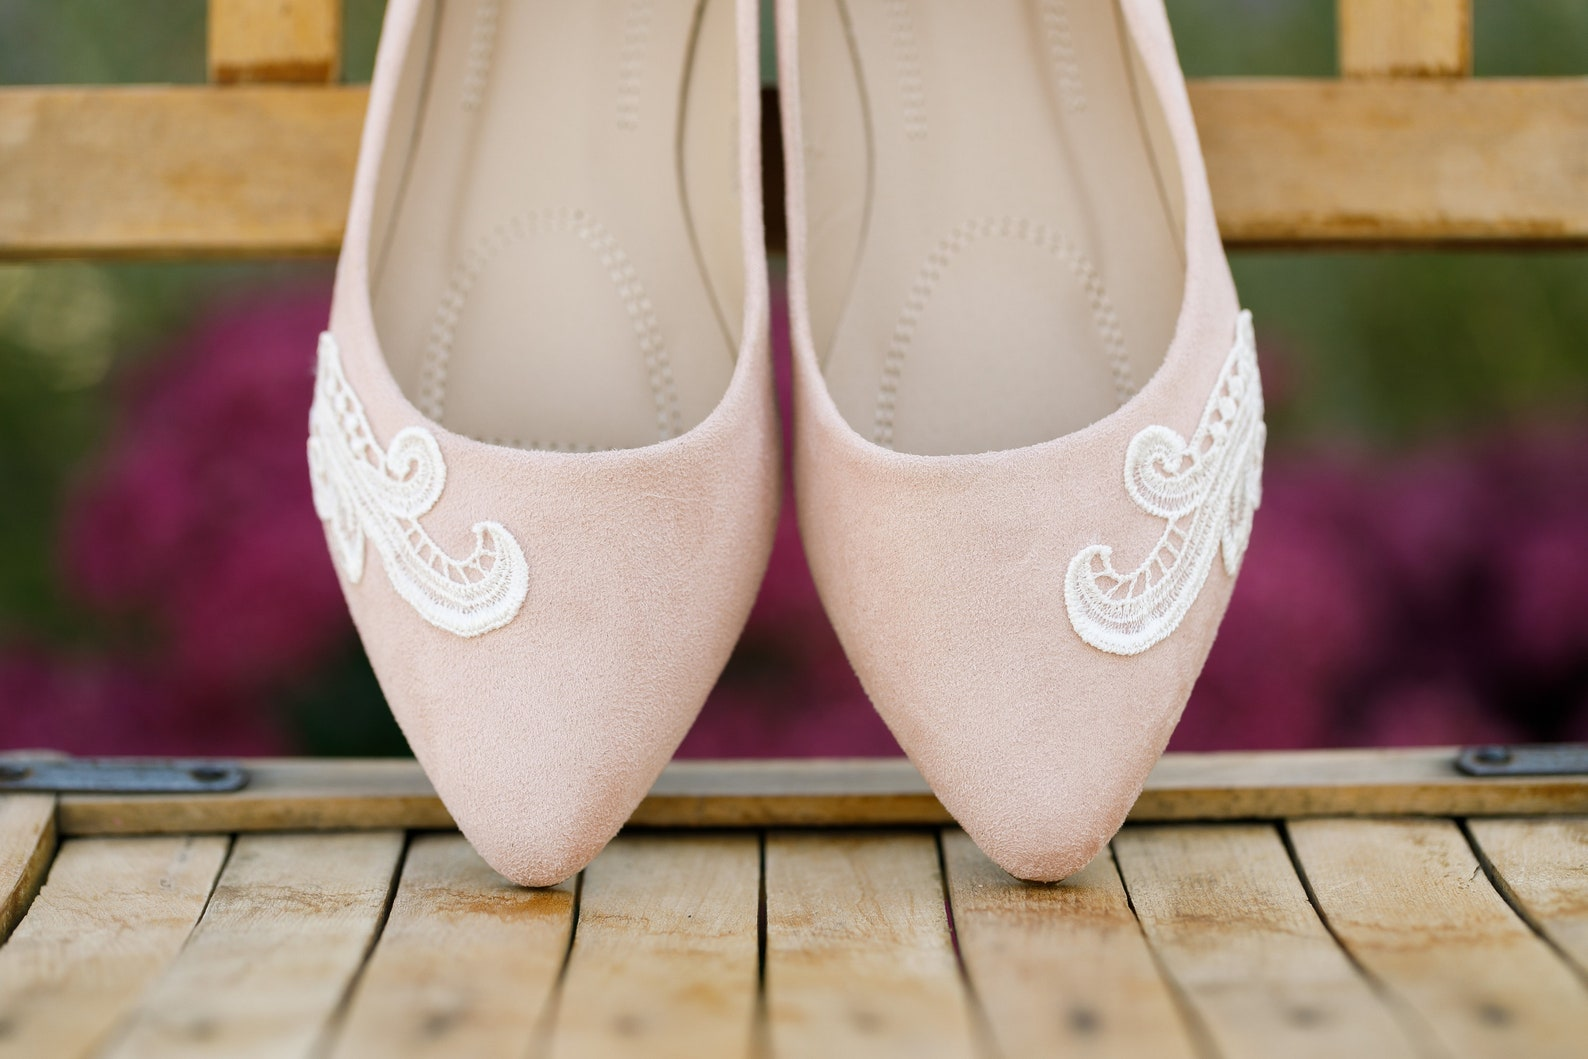 blush wedding flats,bridal flats,ballet flats,flats wedding shoes for bride,bridal shoes,bridal flats,bridesmaid,pink flats with